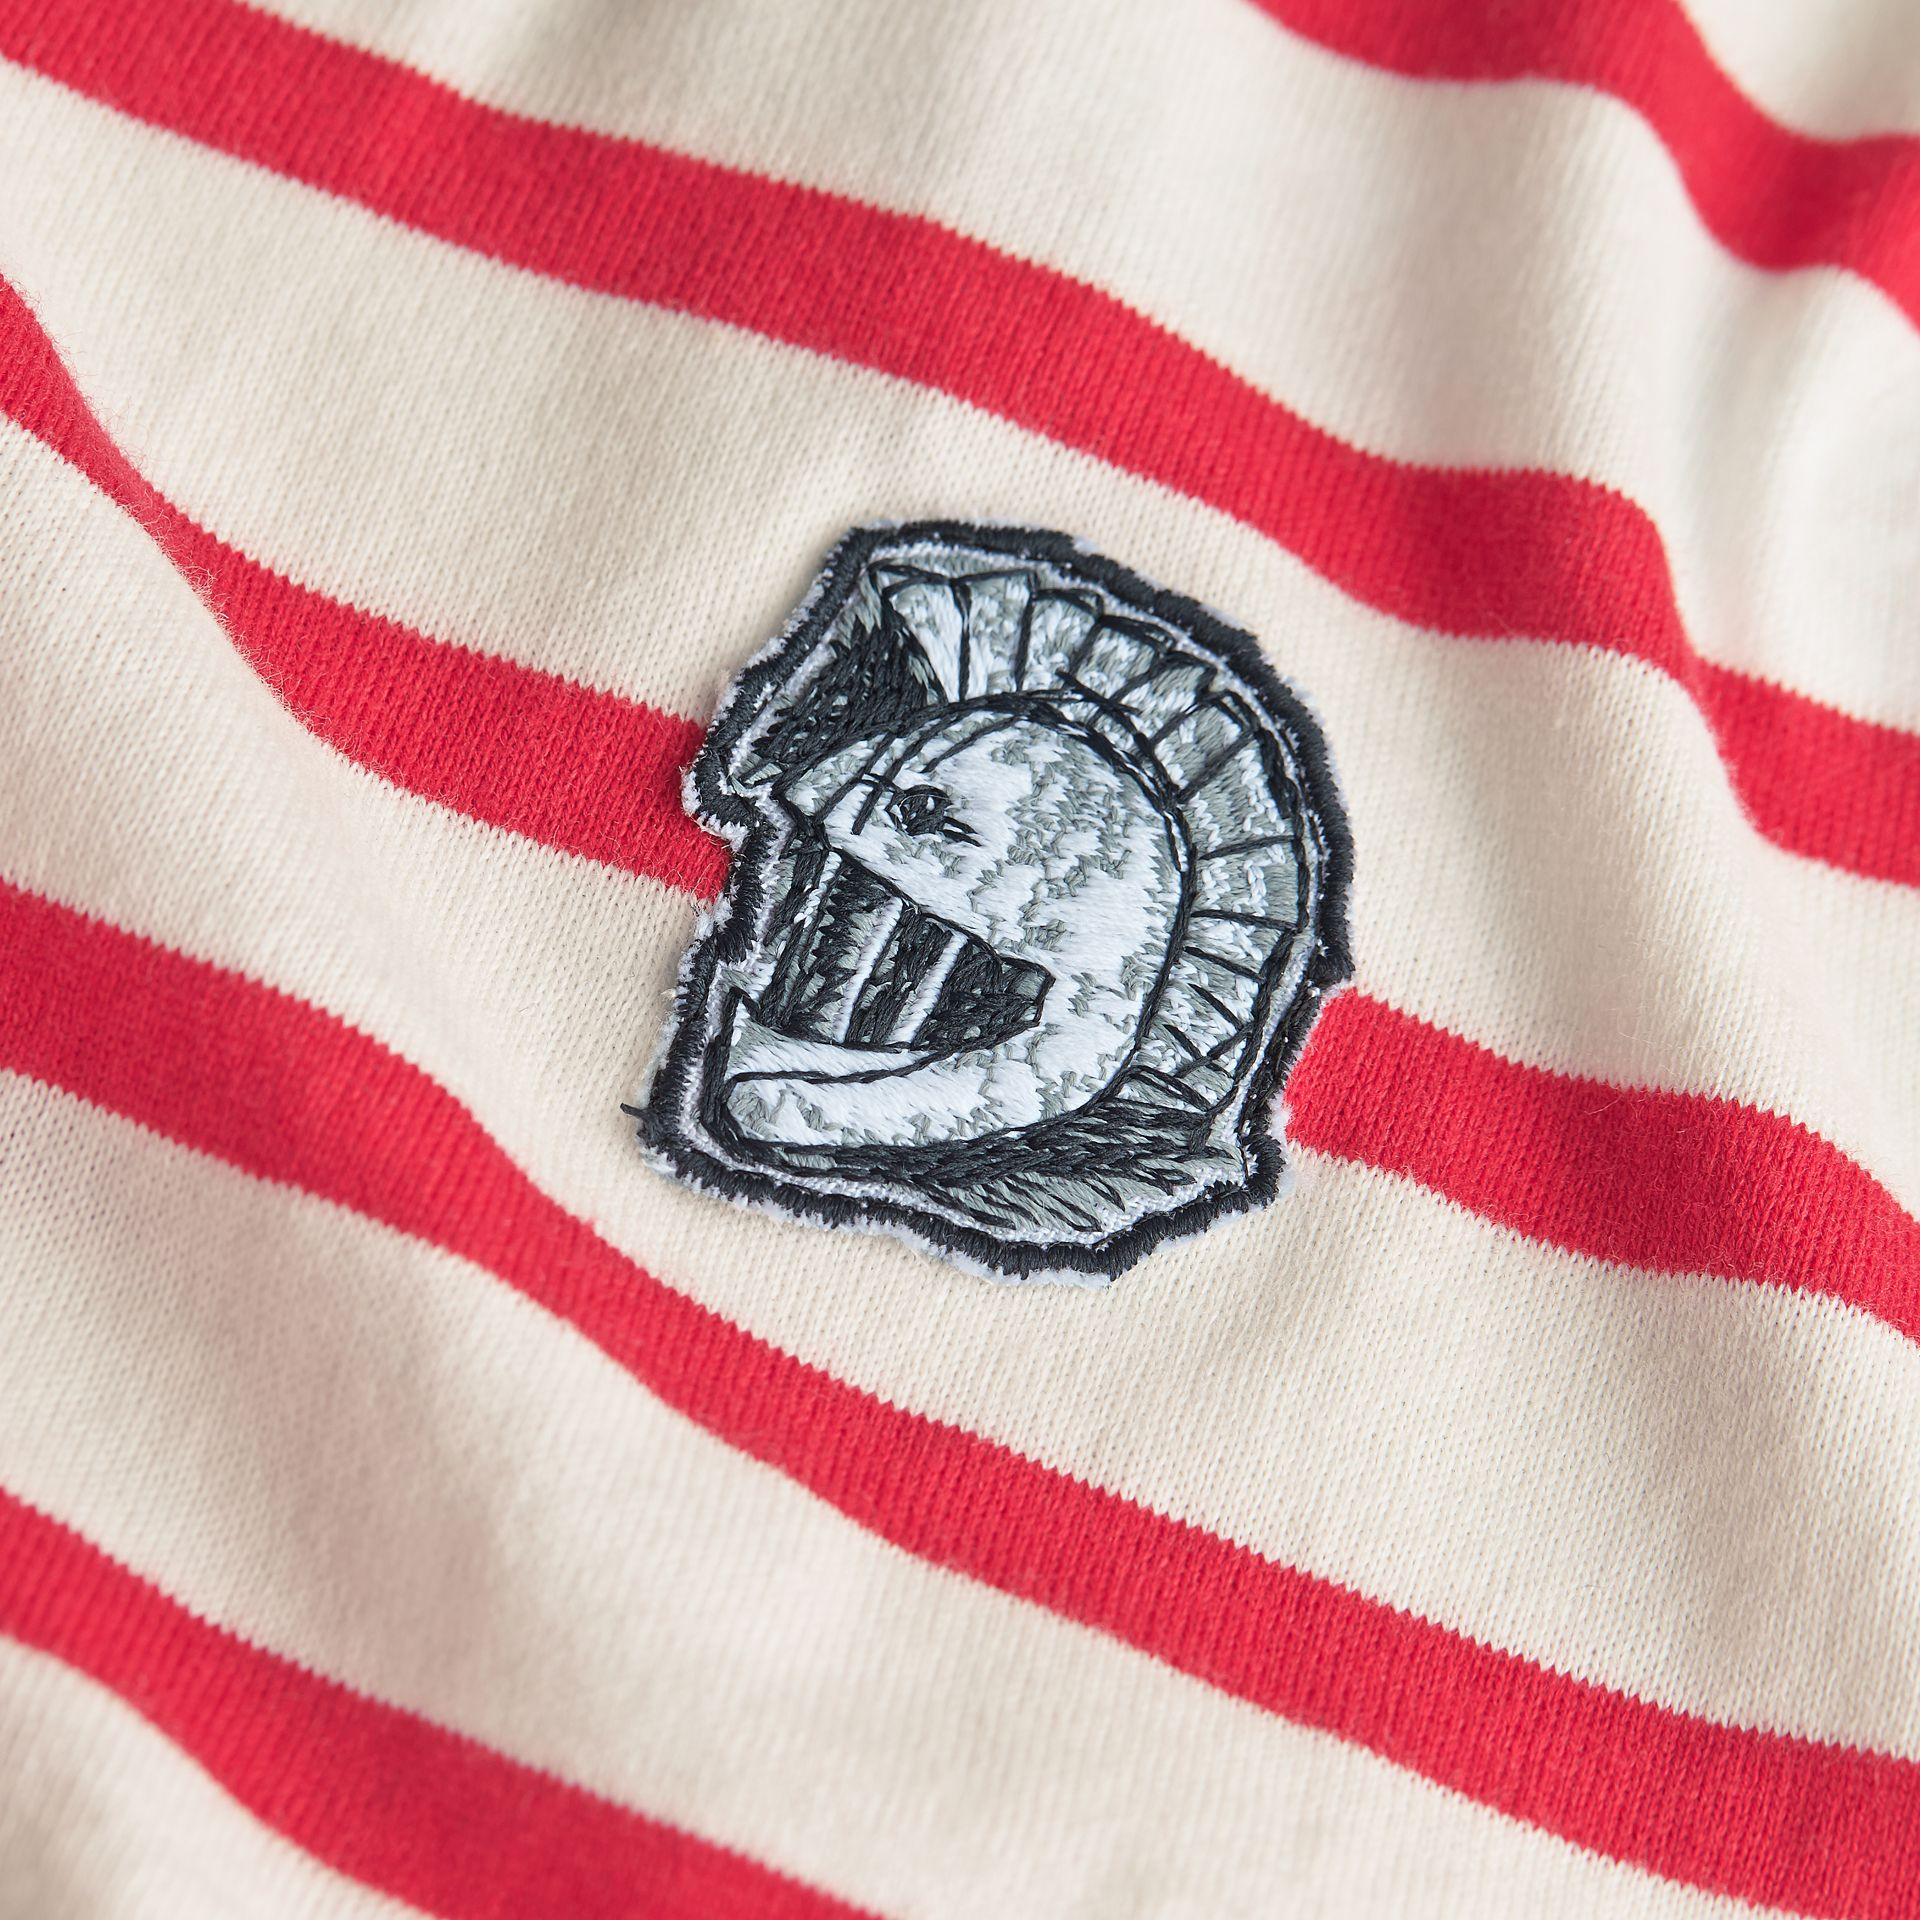 Unisex Pallas Helmet Motif Breton Stripe Cotton Top in Parade Red | Burberry Hong Kong - gallery image 2